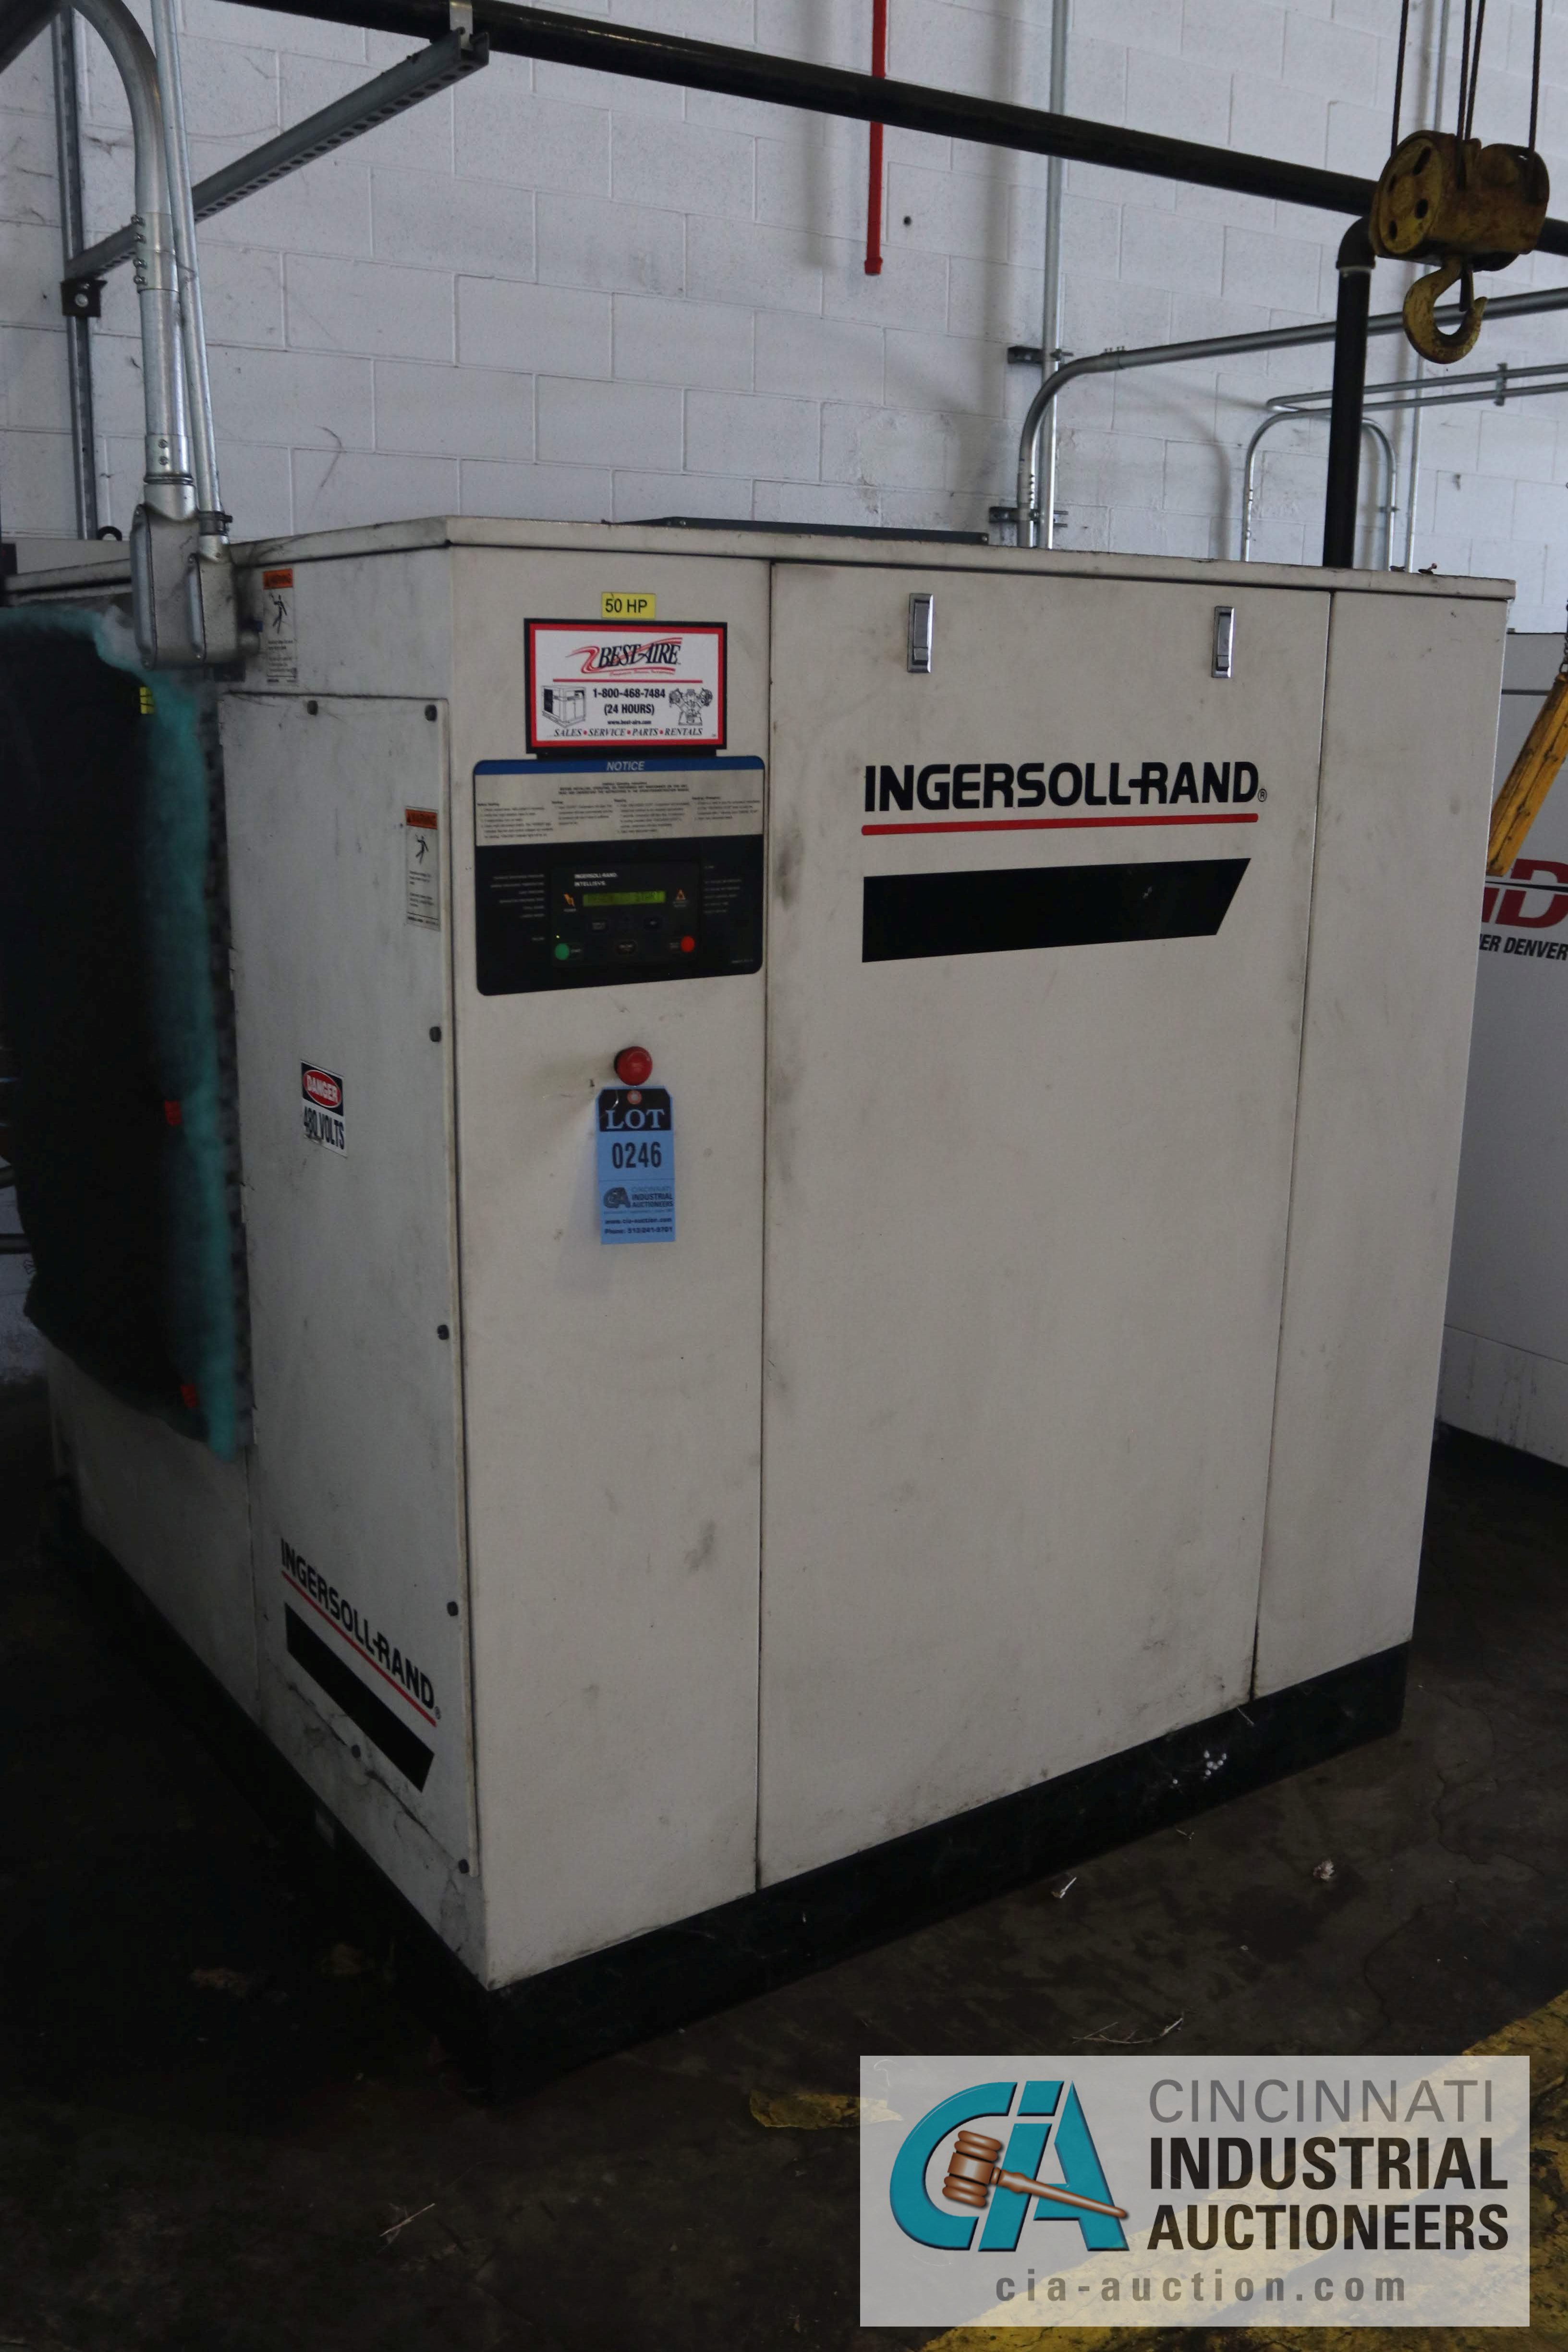 50 HP INGERSOLL RAND MODEL SSR-EP50 ROTARY SCREW AIR COMPRESSOR; 125 PSIG, 59,473 HOURS - $200.00